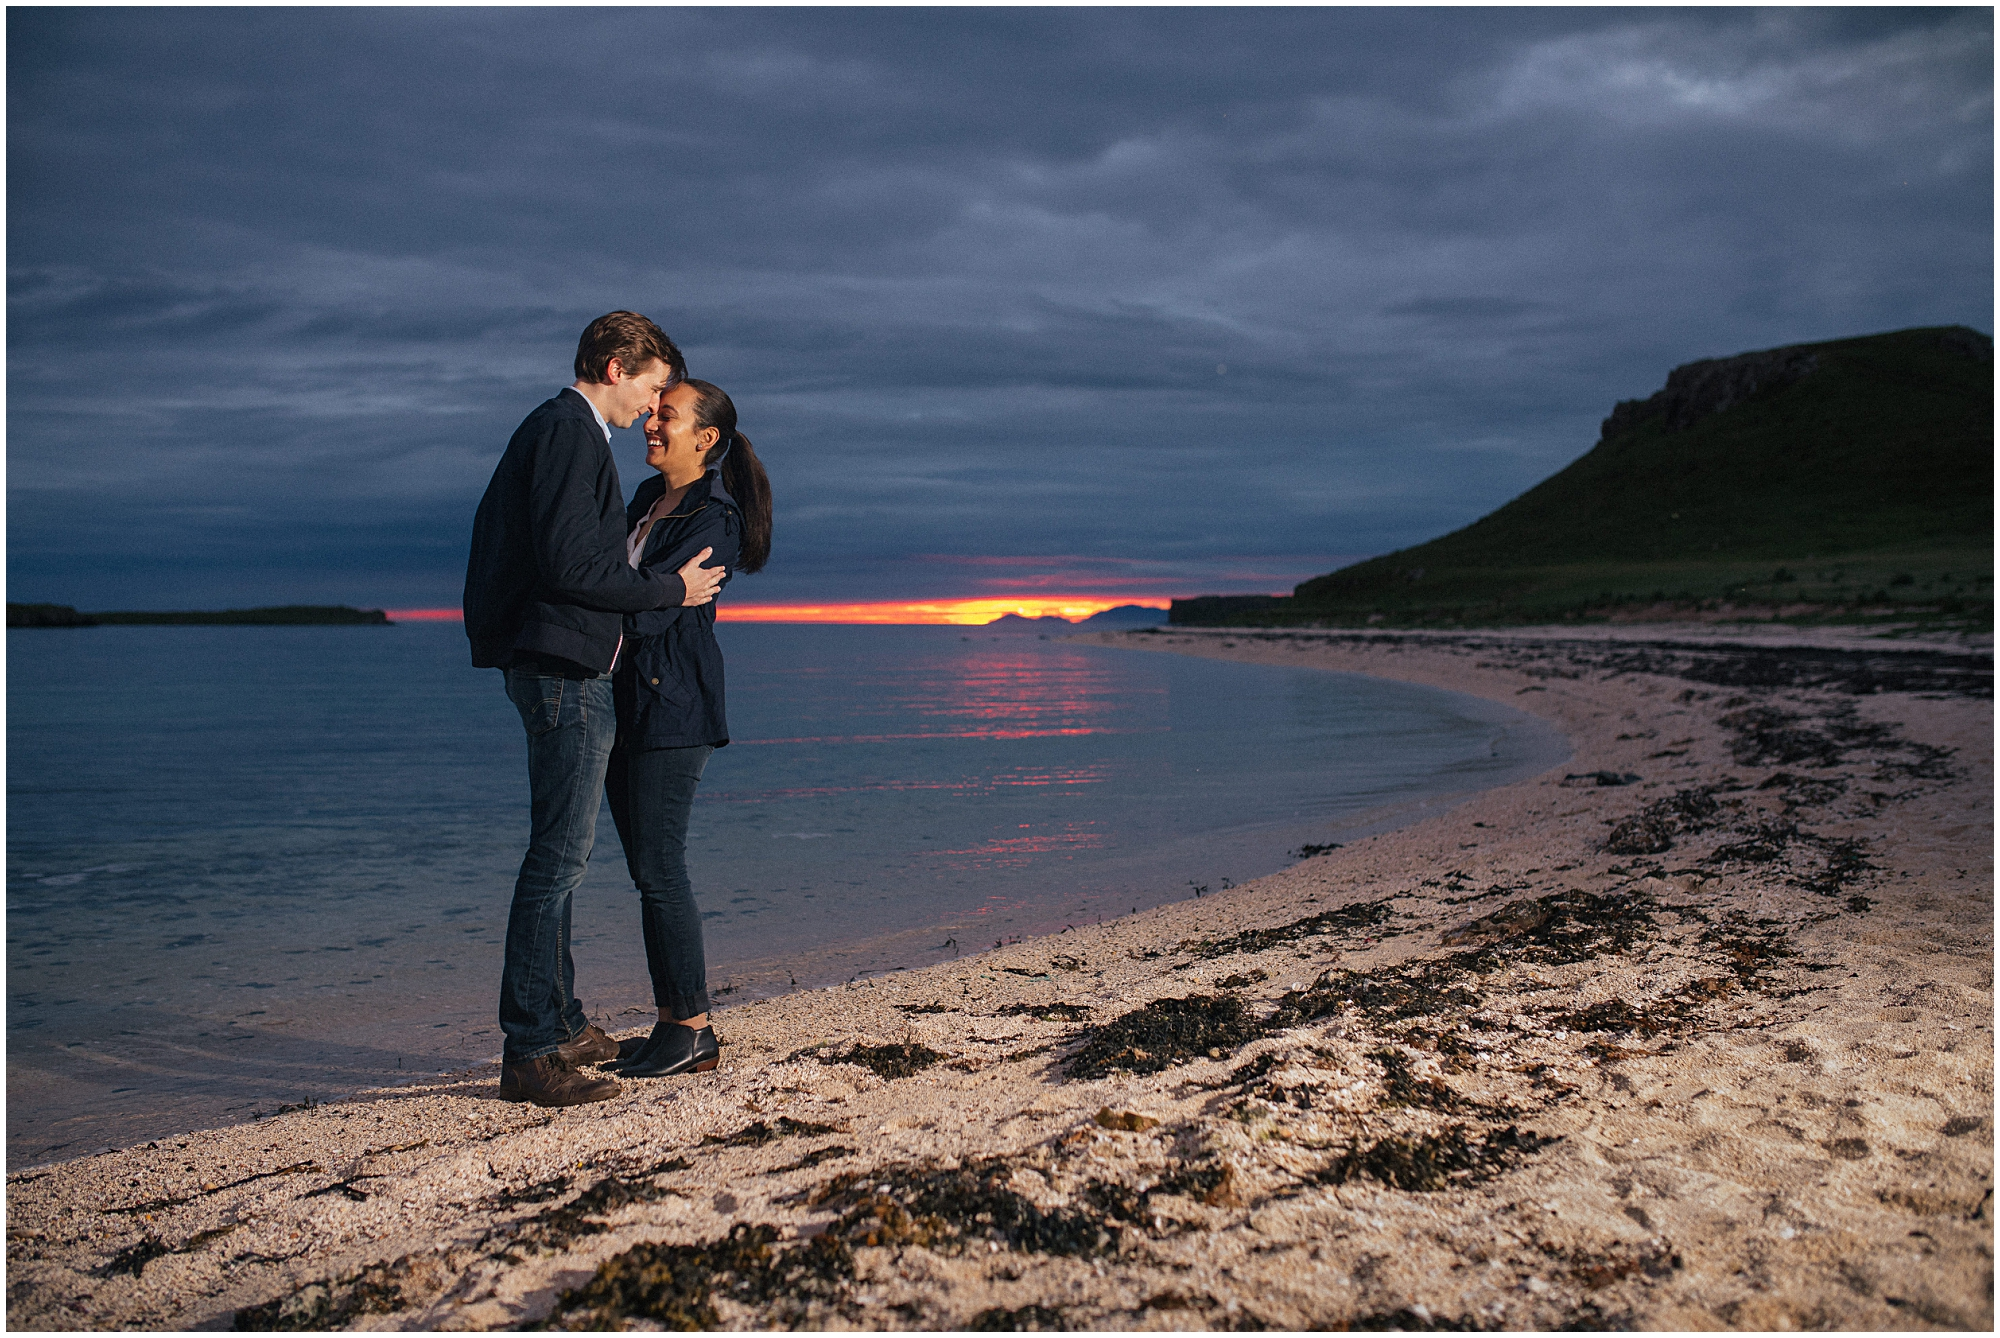 Couple hug on watersedge of Coral Beach, Skye at sunset